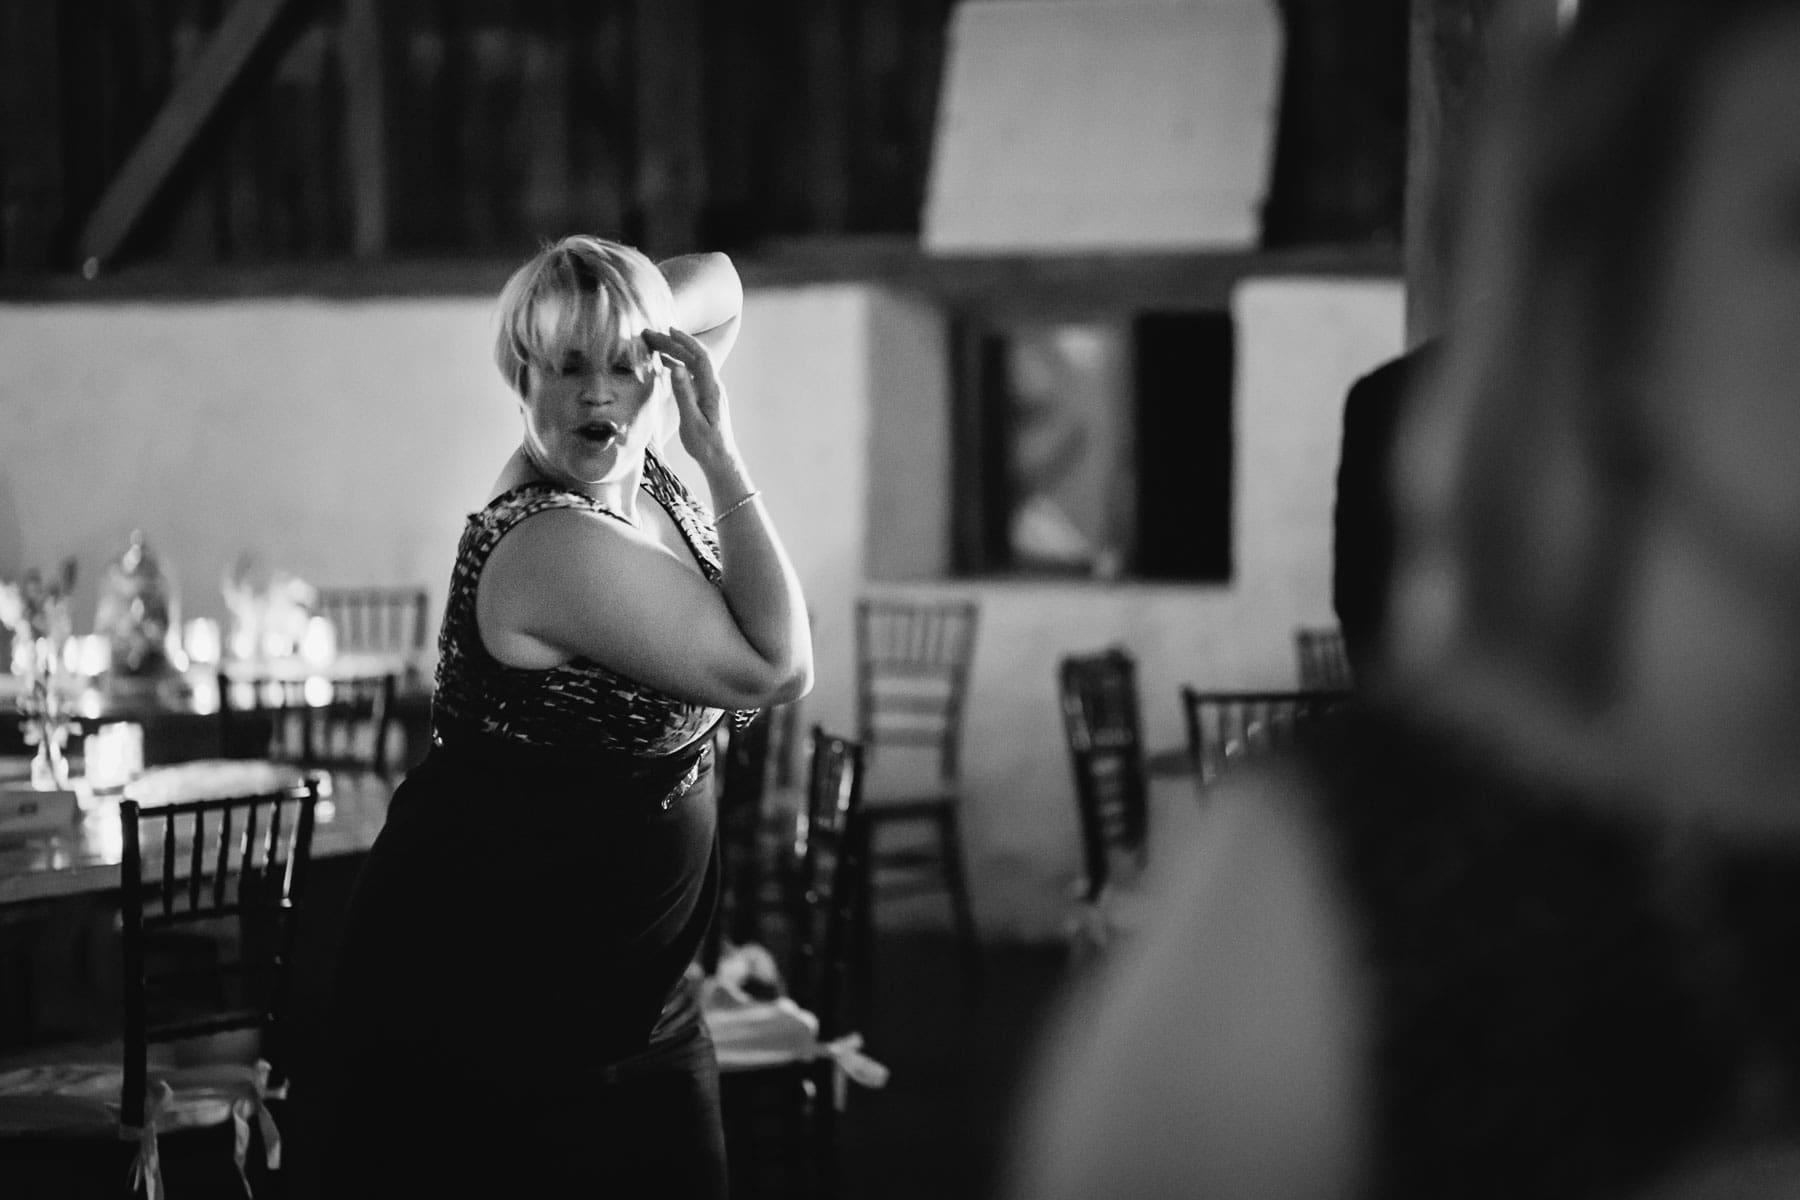 A woman strikes a pose during a dance at this Ball's Falls, Ontario wedding.